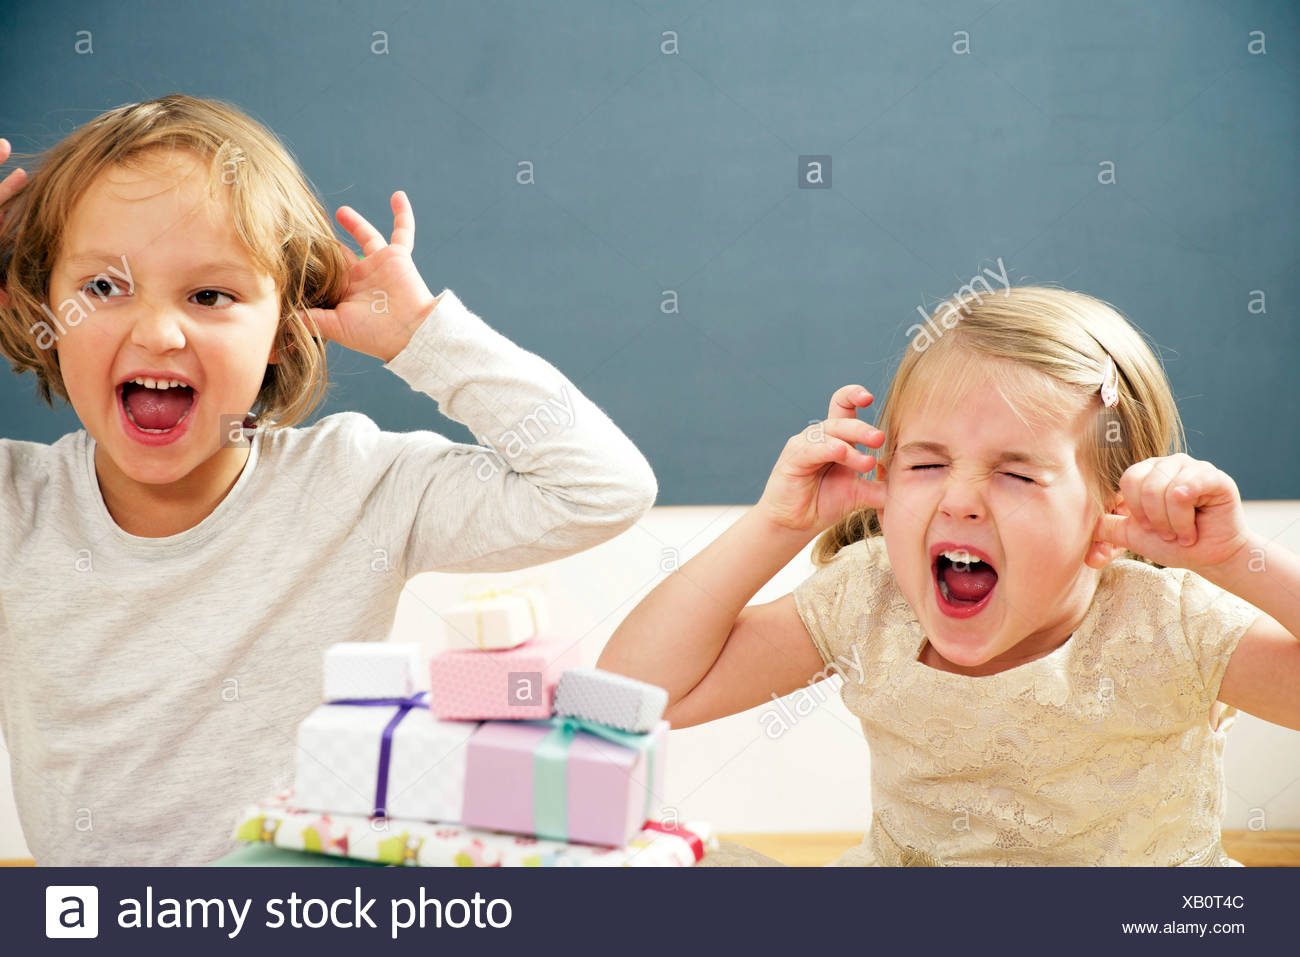 Children on birthday party having fun, Munich, Bavaria, Germany - Stock Image